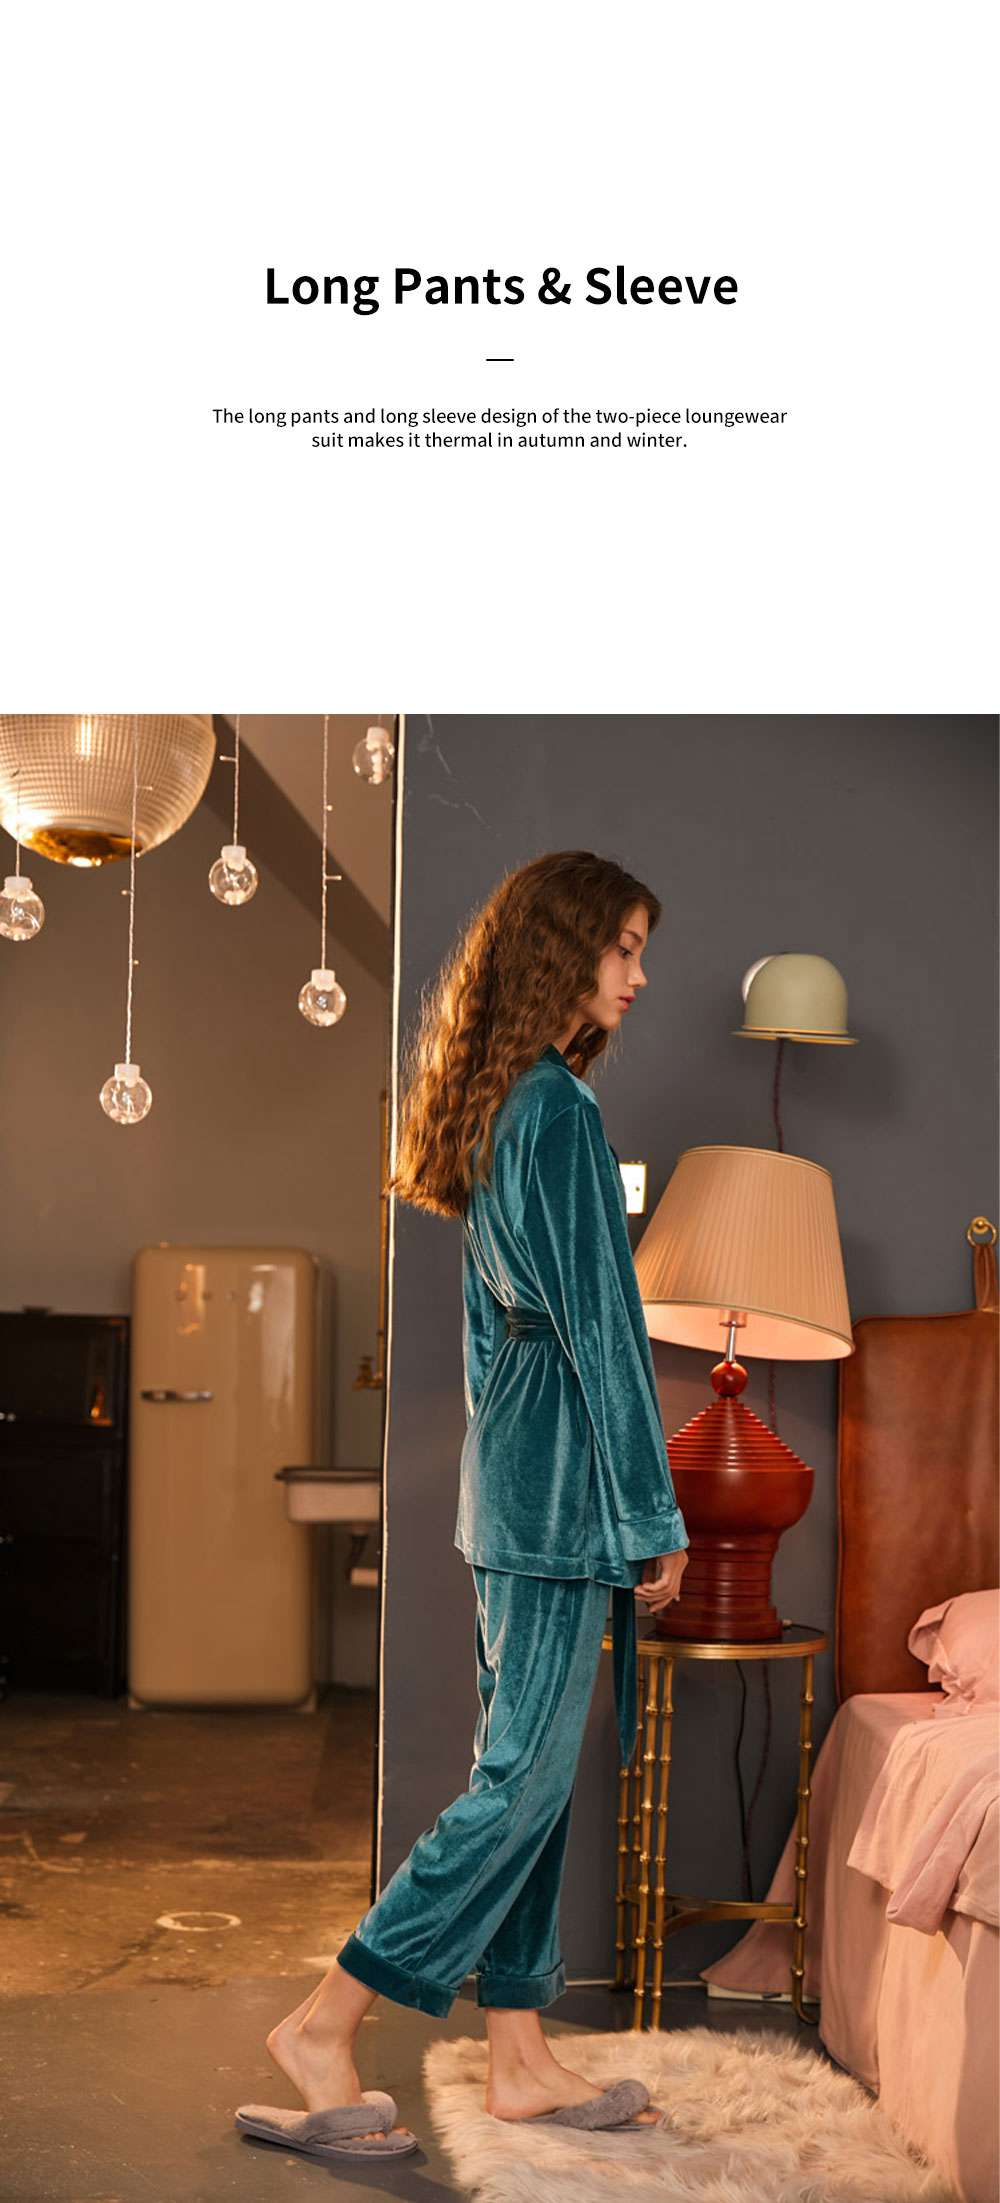 ELFSACK Practical Two-piece Loungewear Suit for Lady Wear Embroidered Velvet Pajamas with Waistband Sexy Thin Nightclothes 3